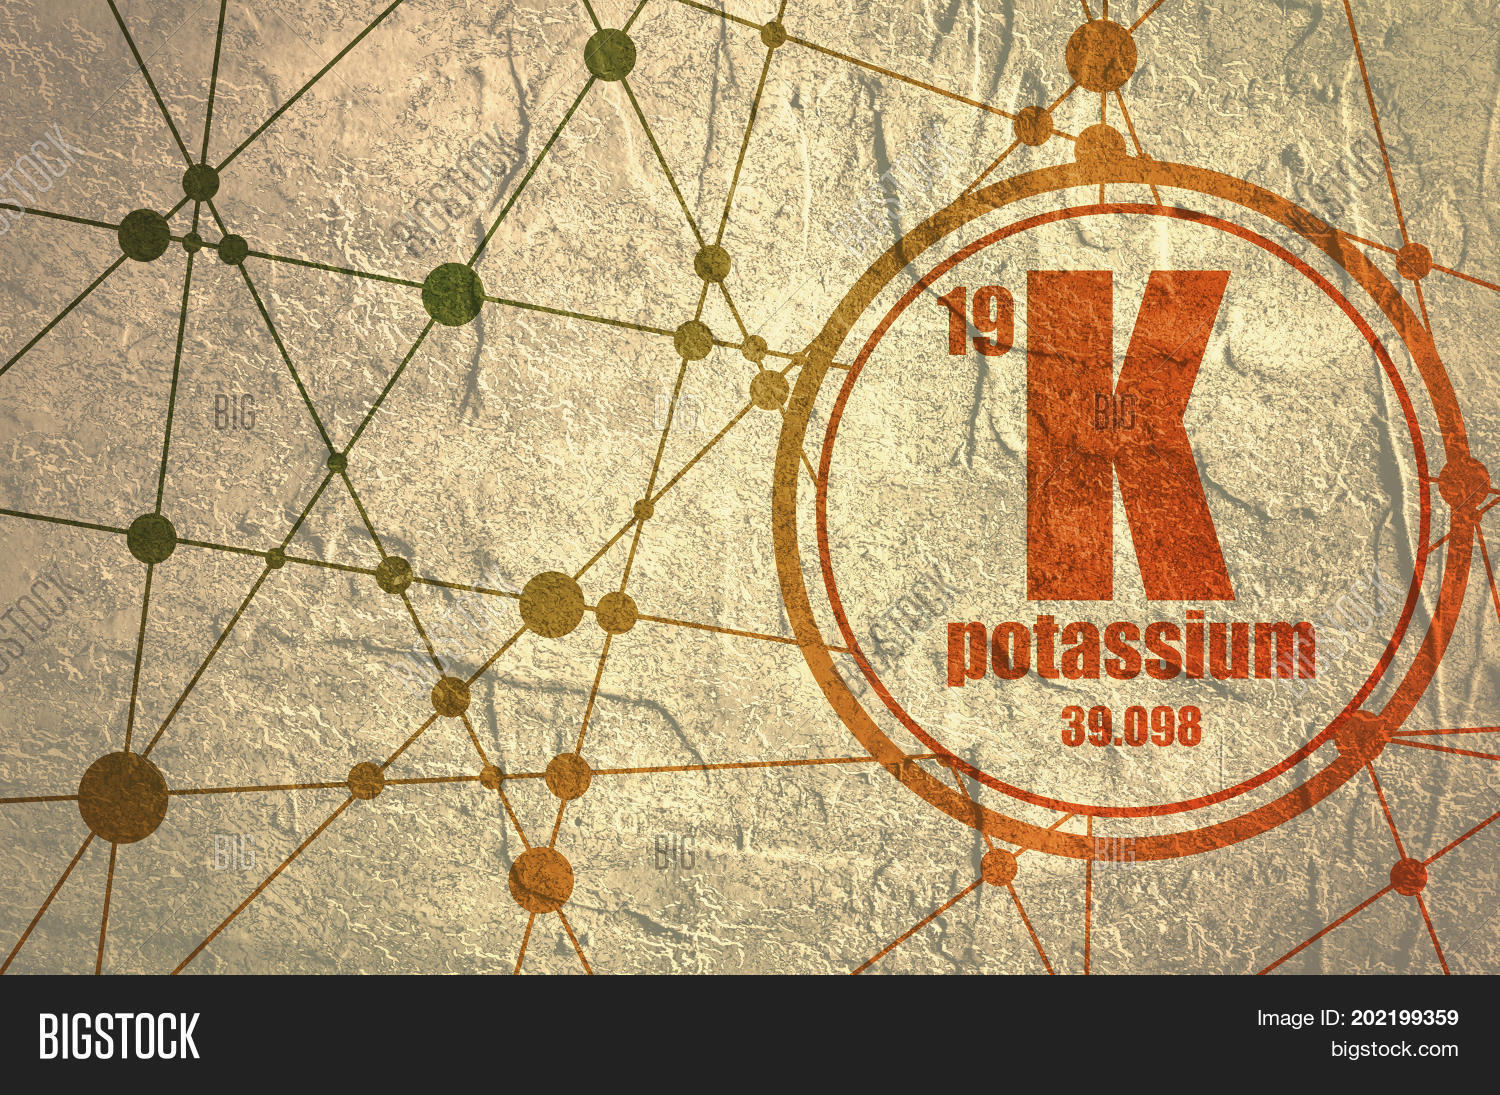 Potassium chemical element sign image photo bigstock potassium chemical element sign with atomic number and atomic weight chemical element of periodic urtaz Image collections